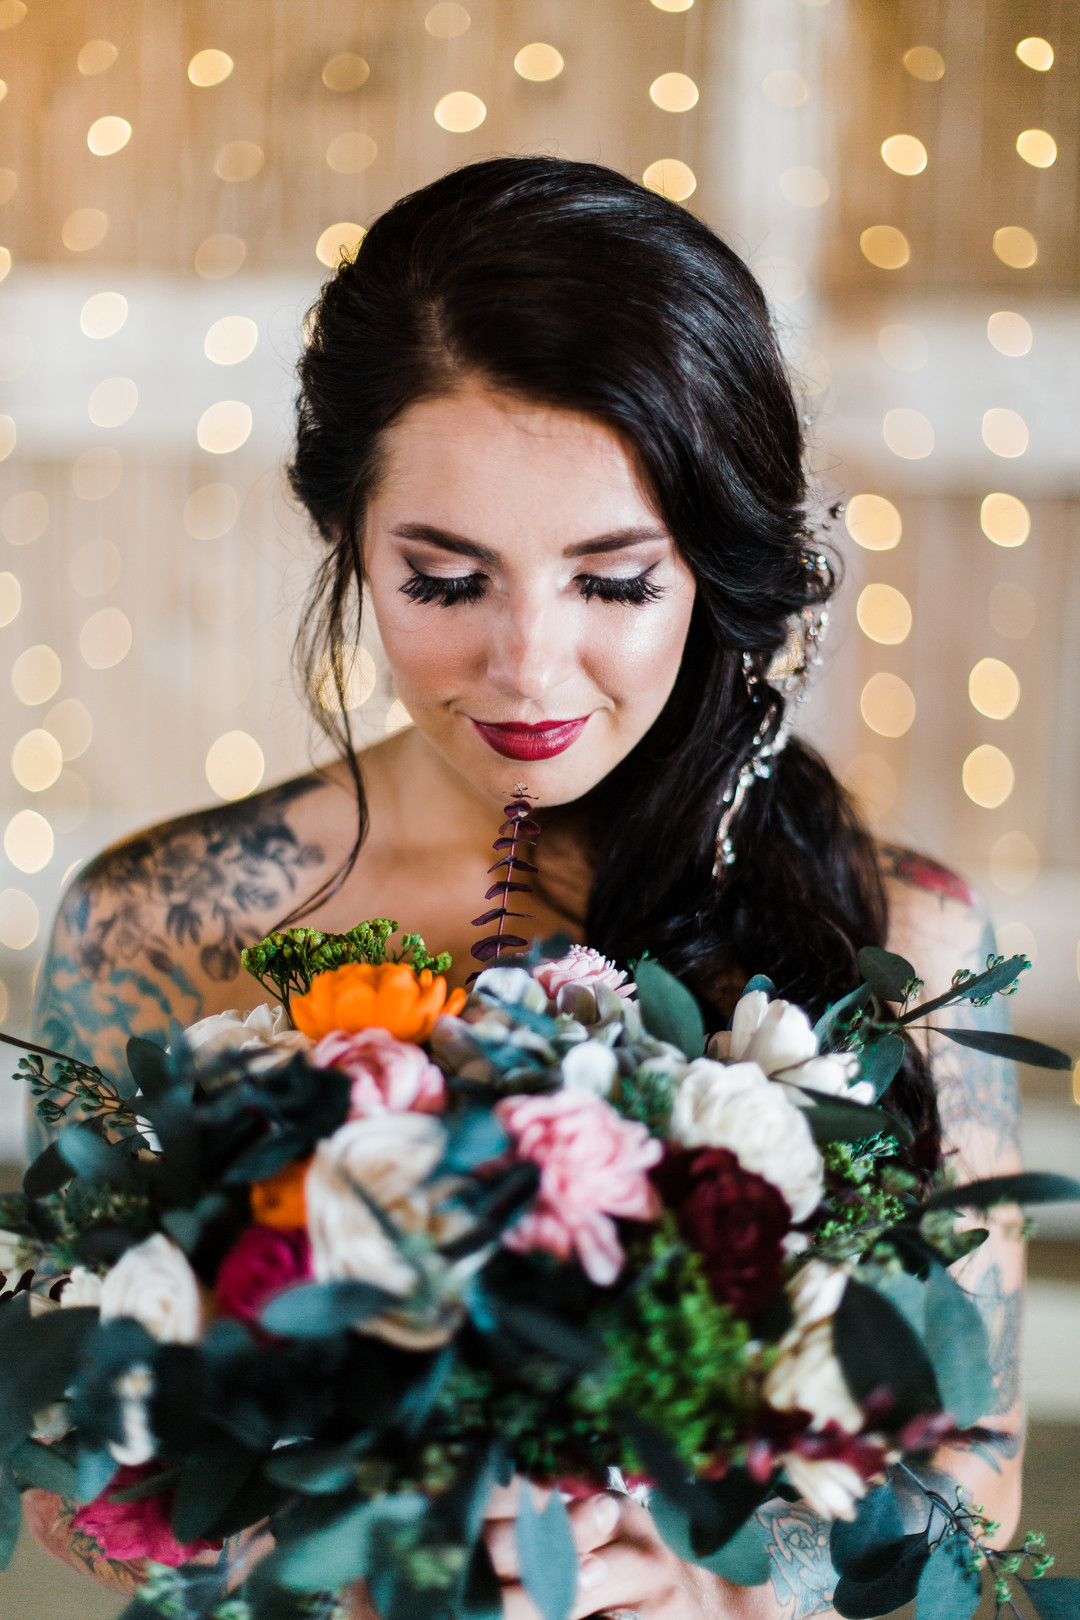 Wedding makeup: Rustic barn wedding inspiration captured by Grace Rios Photography. See more fall wedding ideas at CHItheeWED.com!